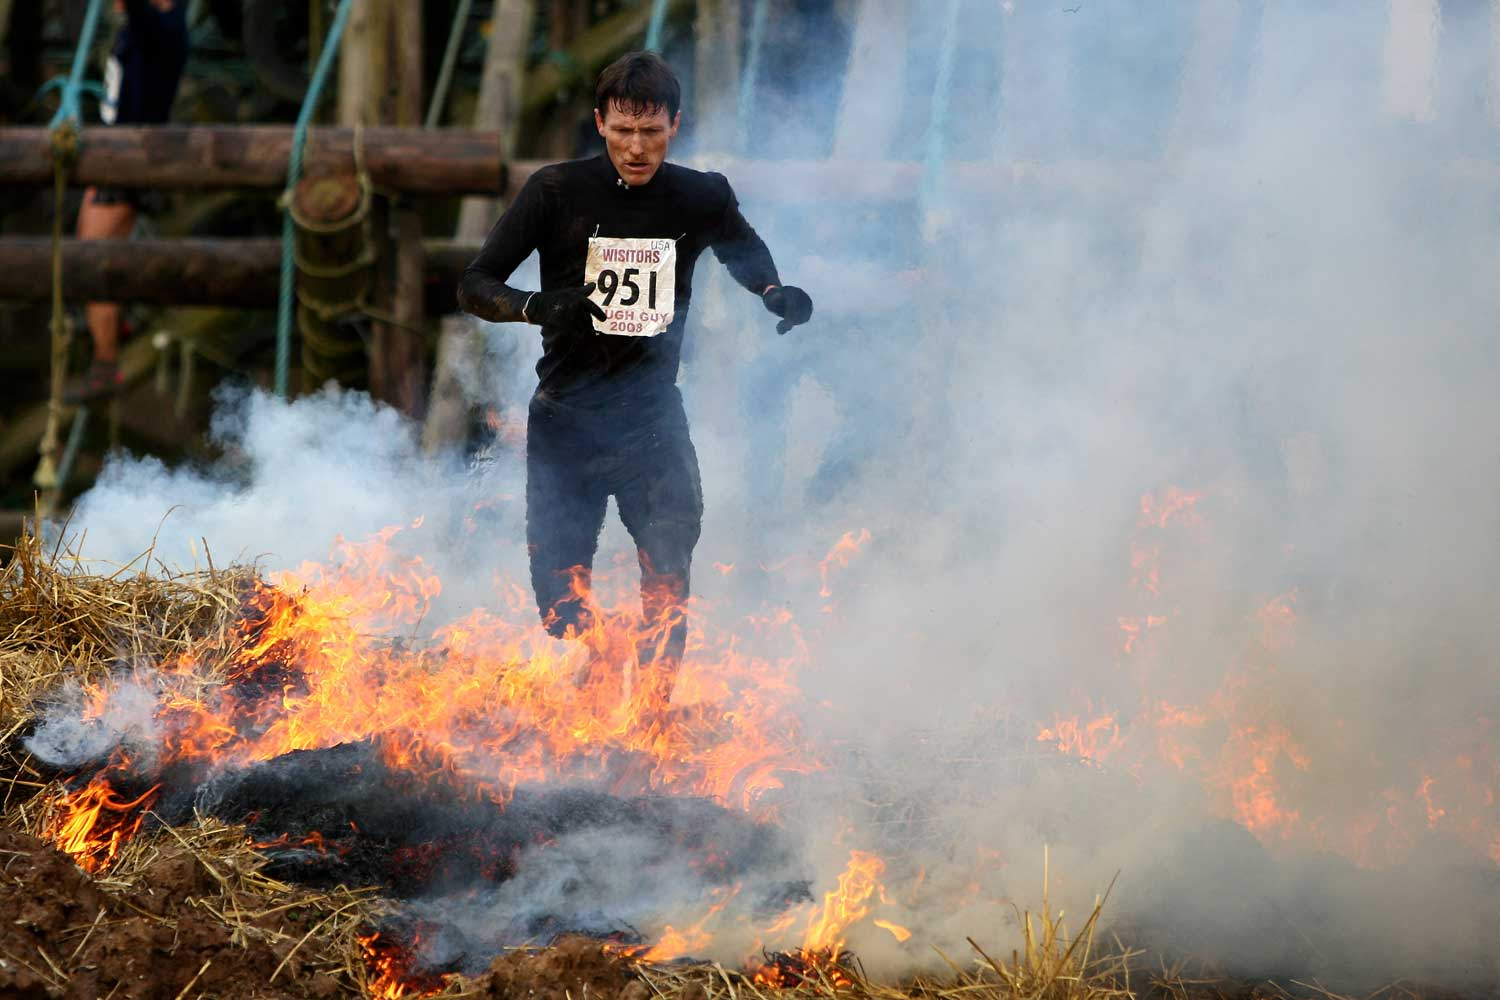 A Tough Guy Challenge competitor runs through flames during the race in Wolverhampton, England.